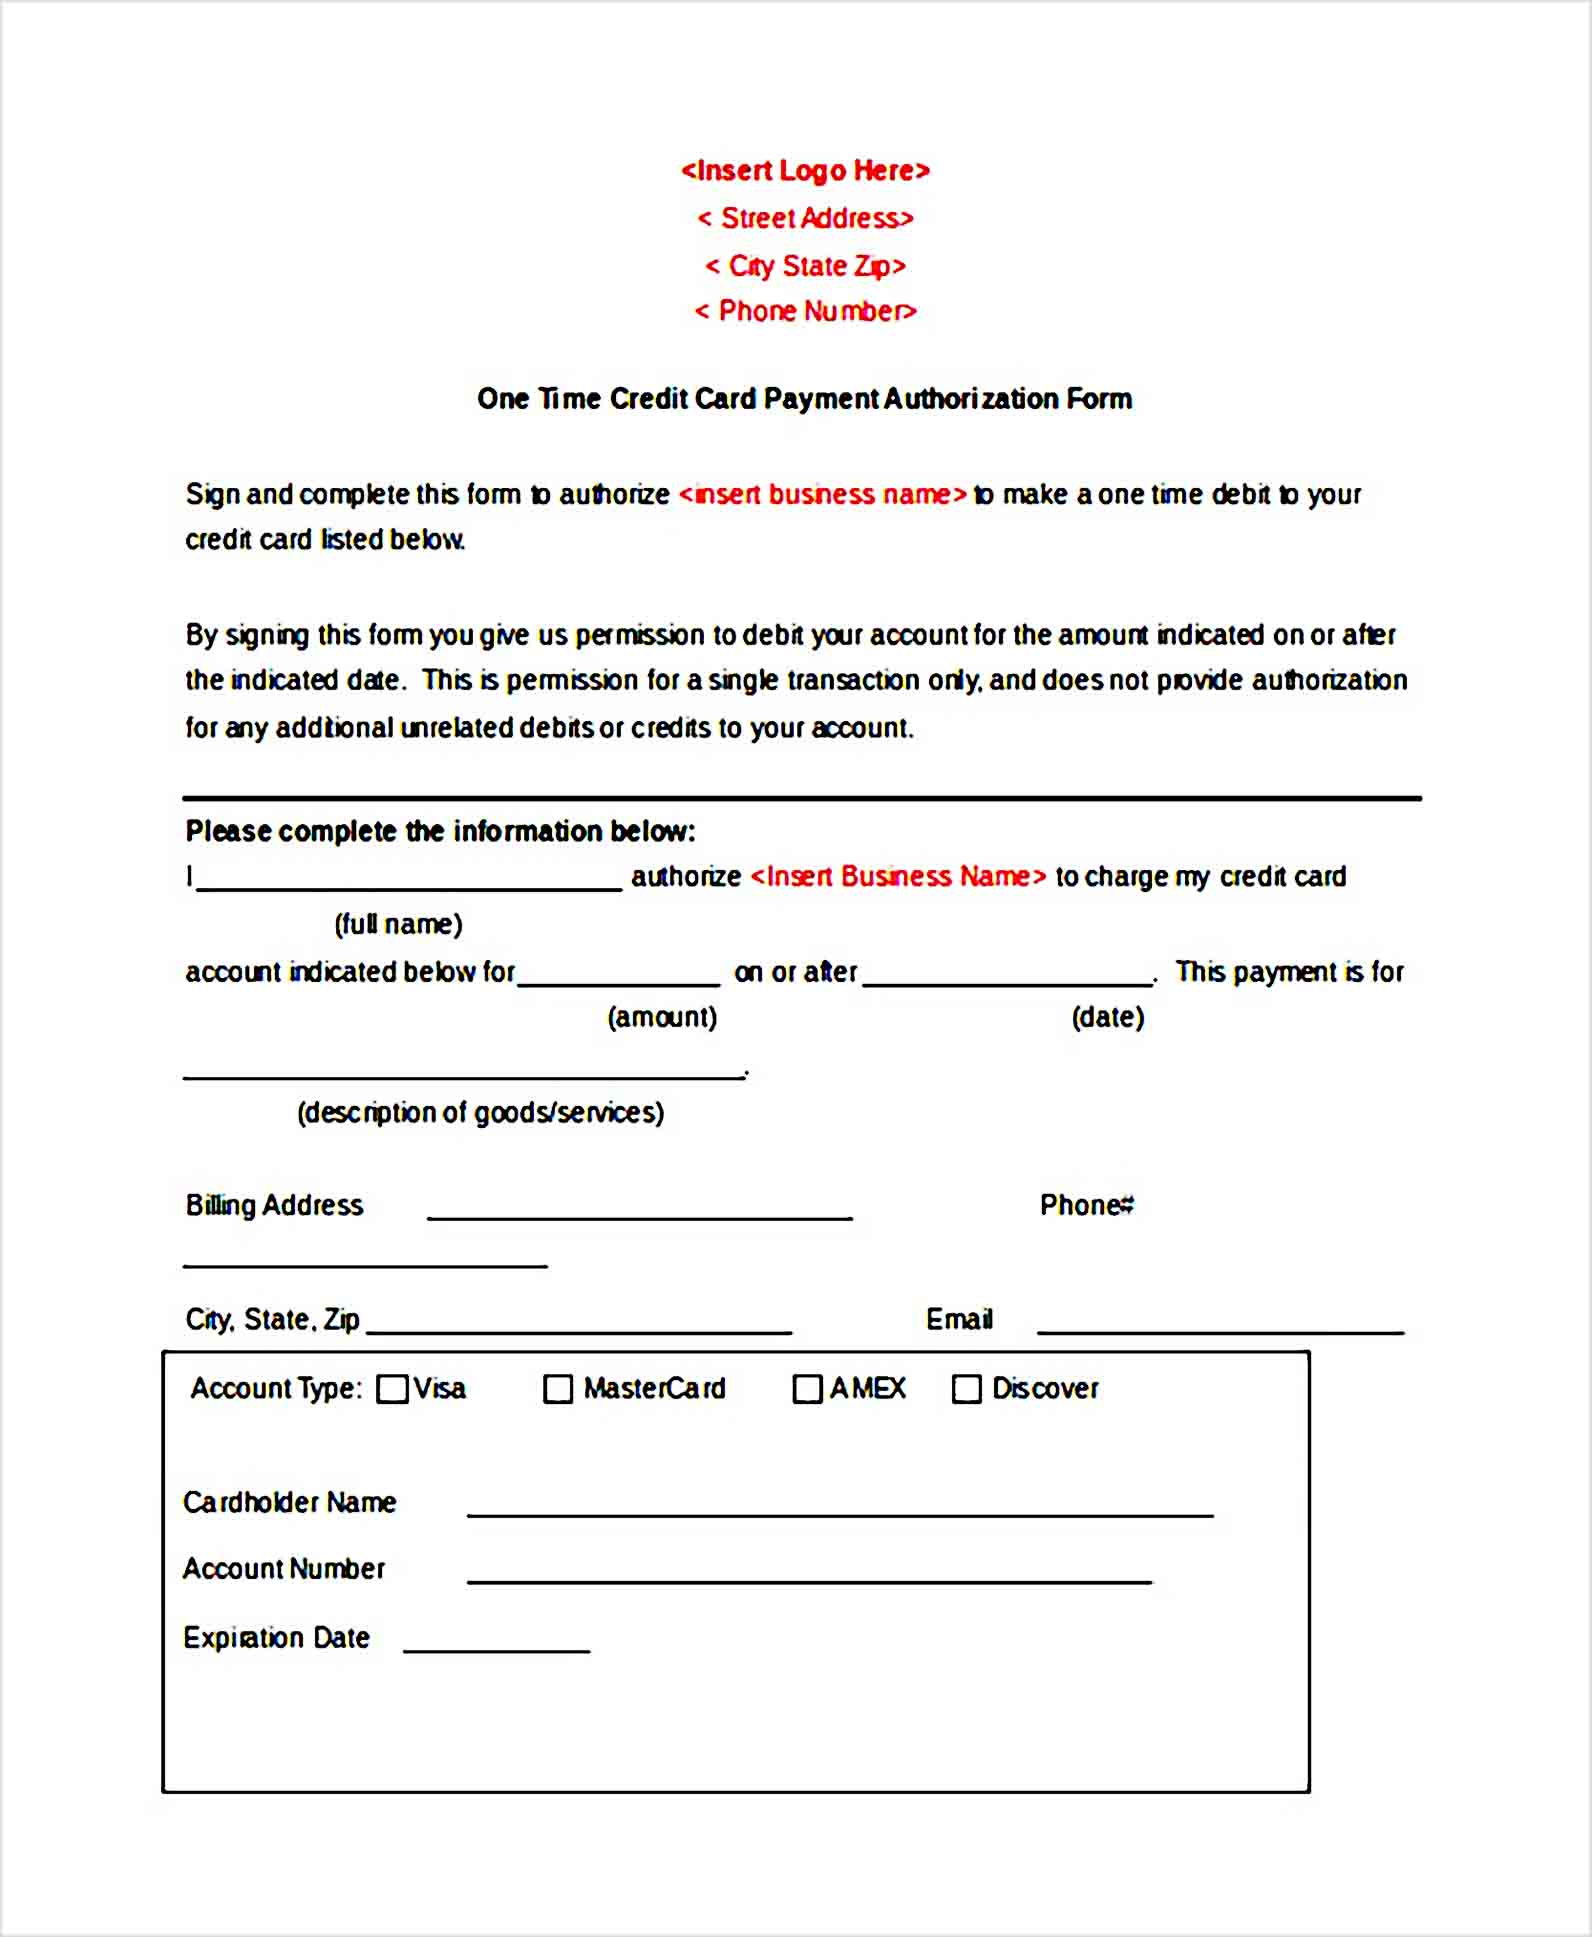 One Time Credit Card Payment Authorization Form Template